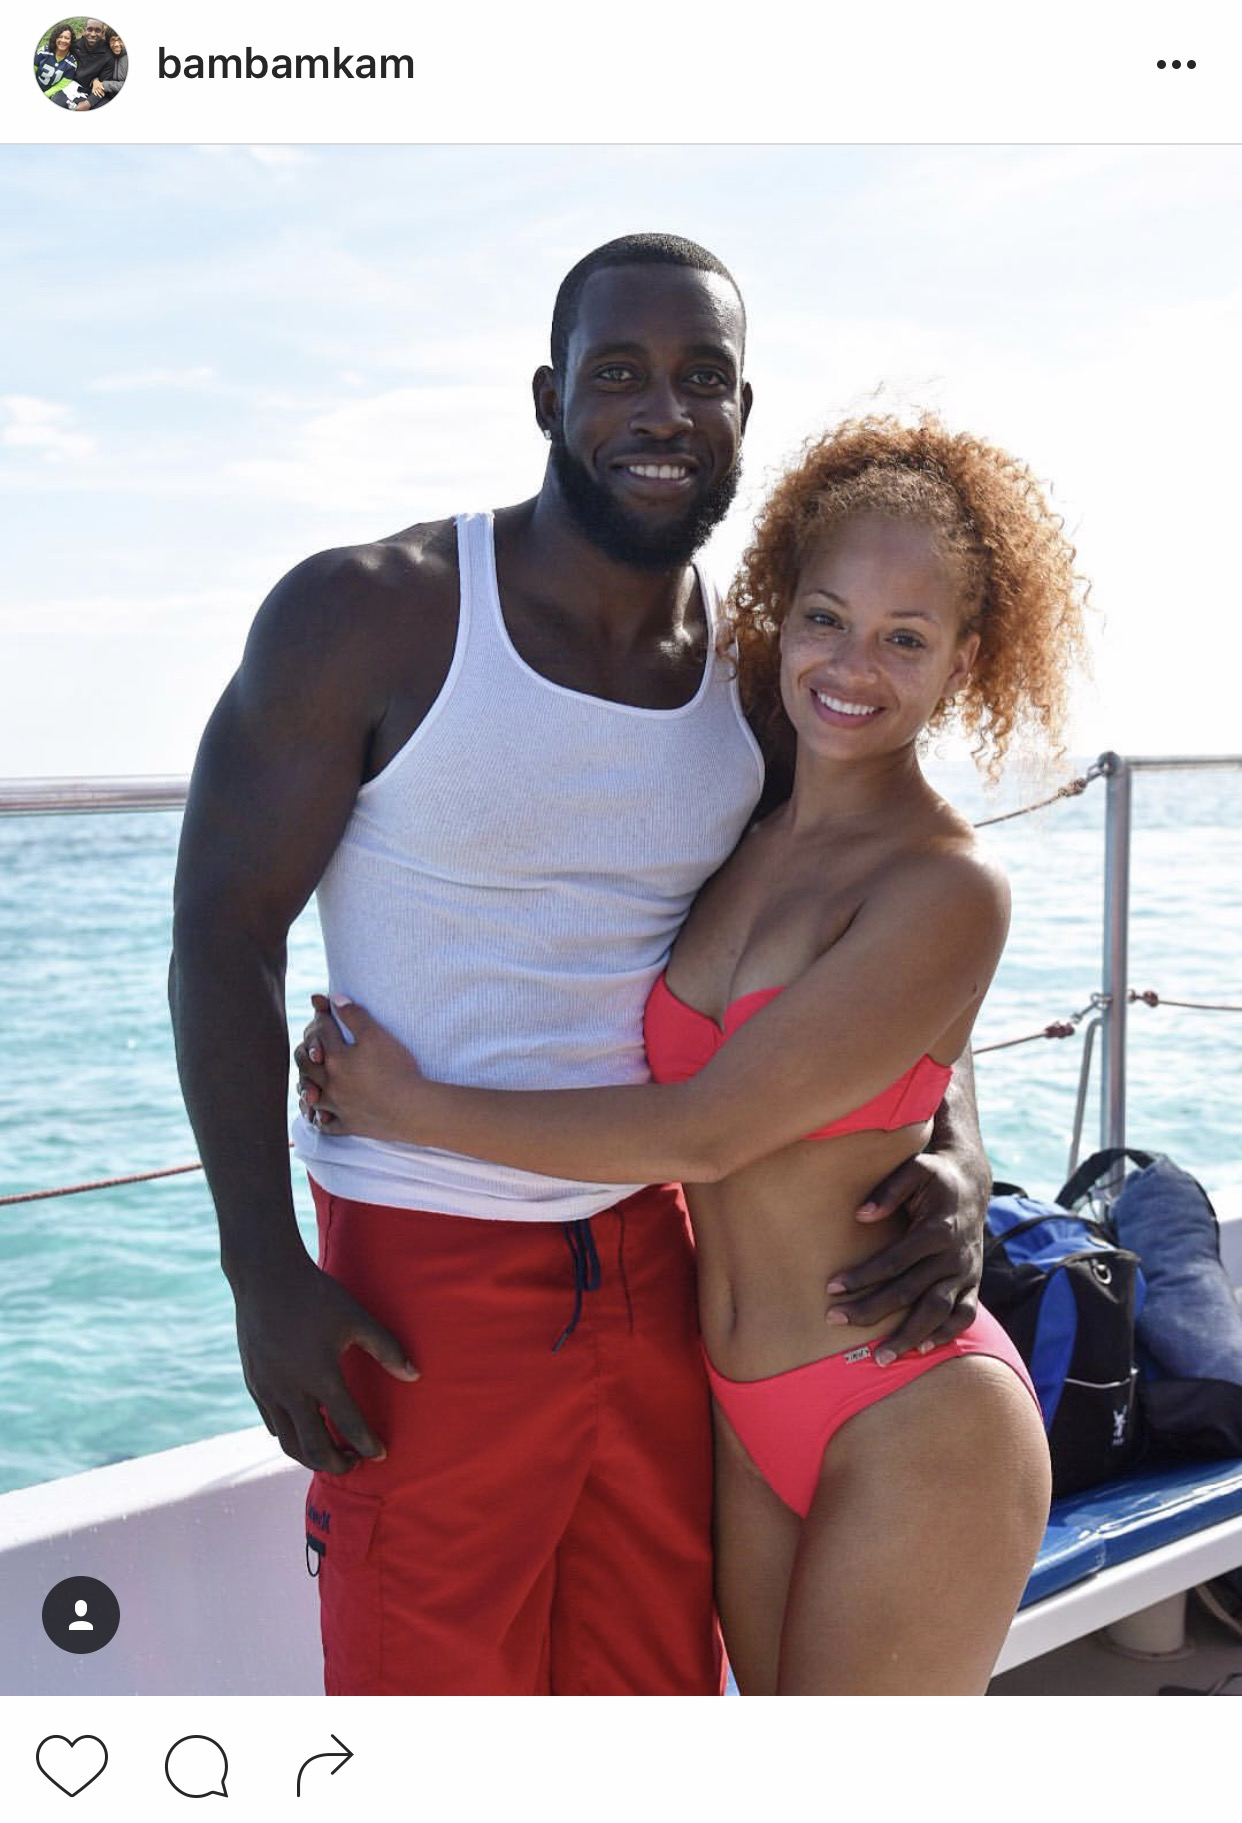 Bam Bam Kam Hawks safety Kam Chancellor is engaged